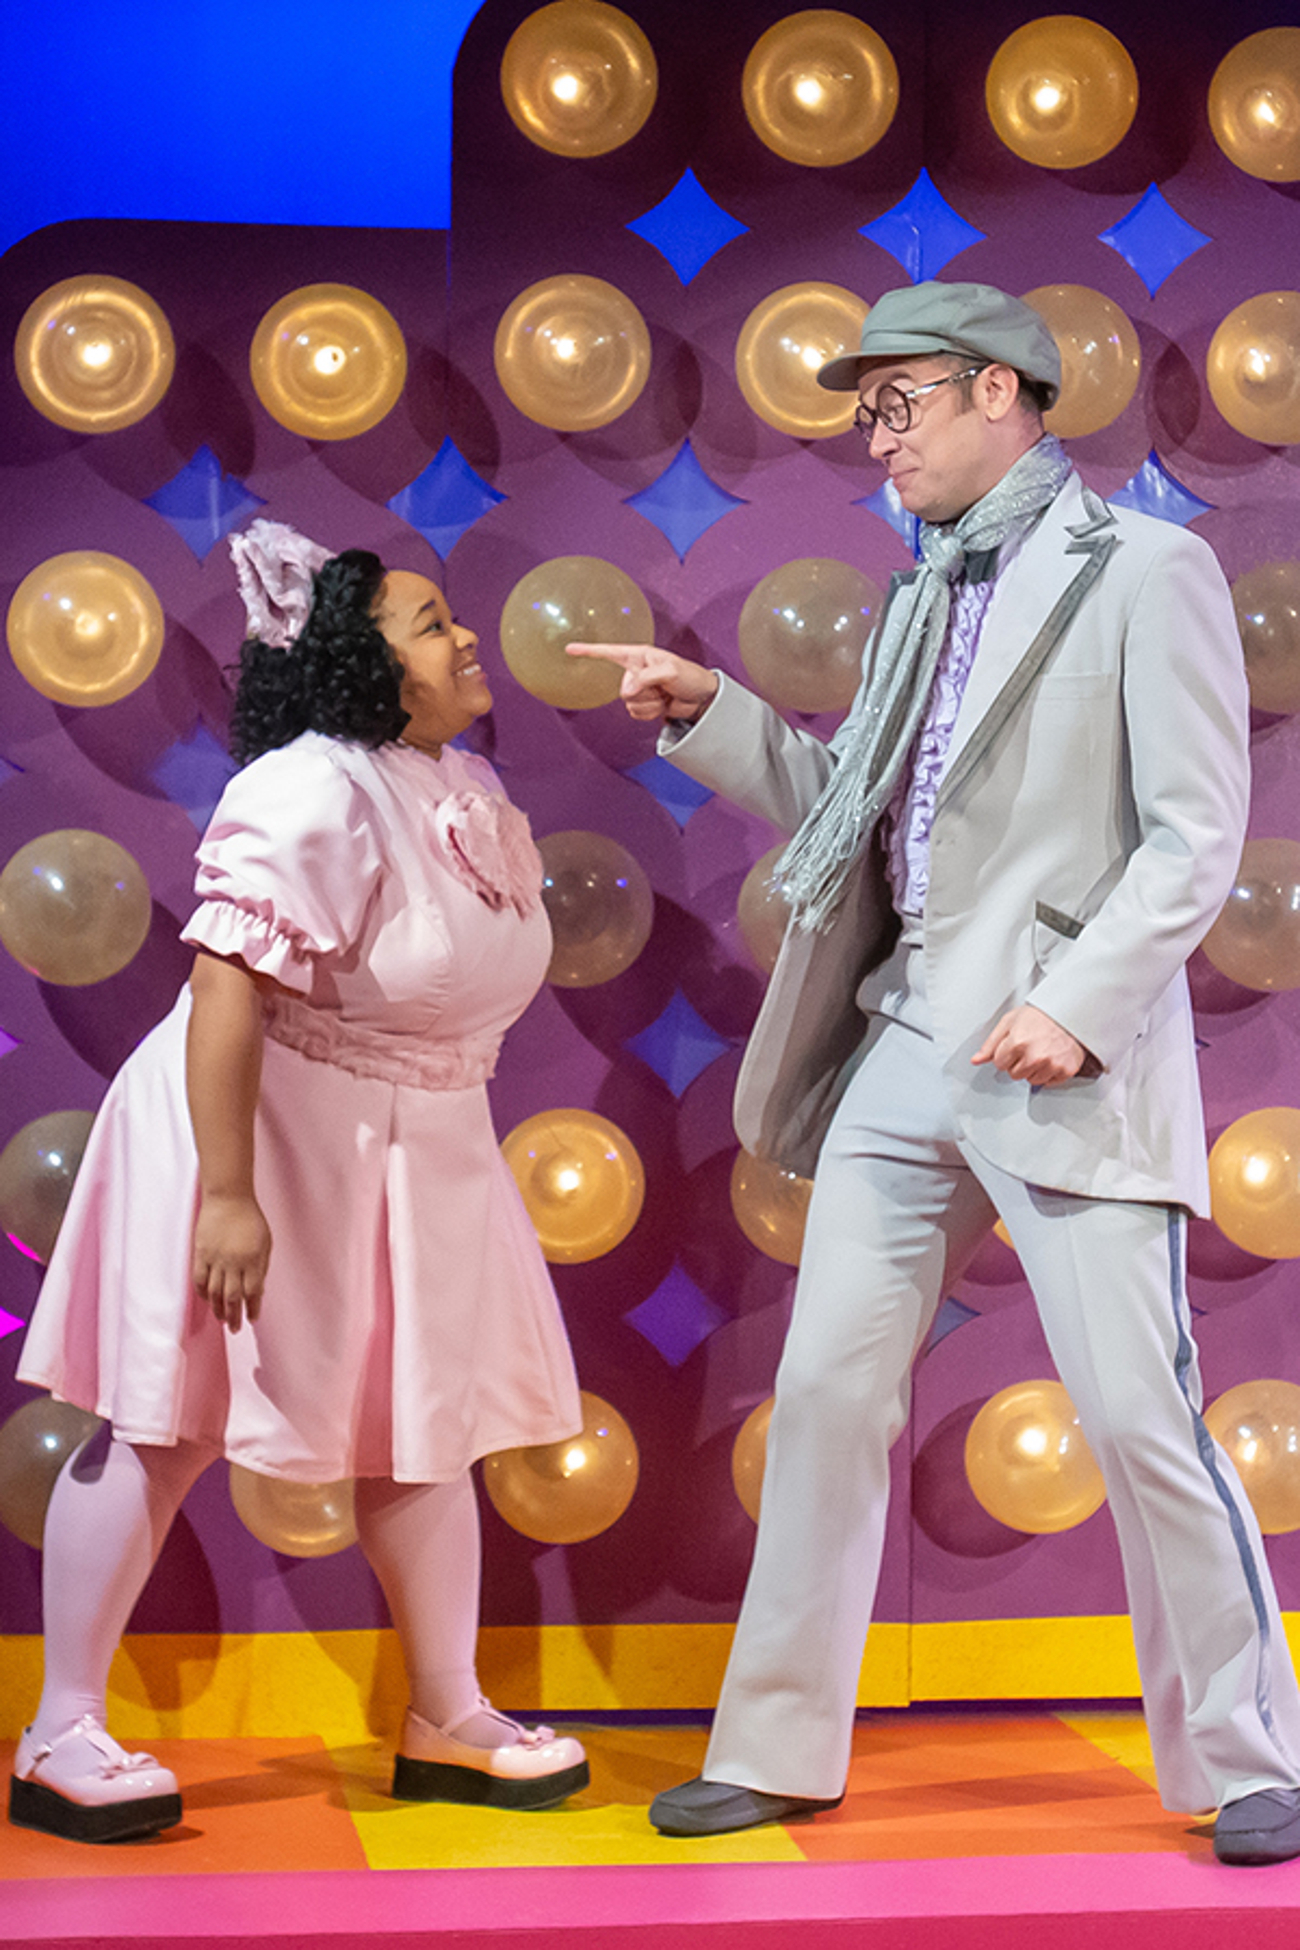 BWW Review: ELEPHANT AND PIGGIE'S WE ARE IN A PLAY Opens at the Coterie Theatre in Kansas City